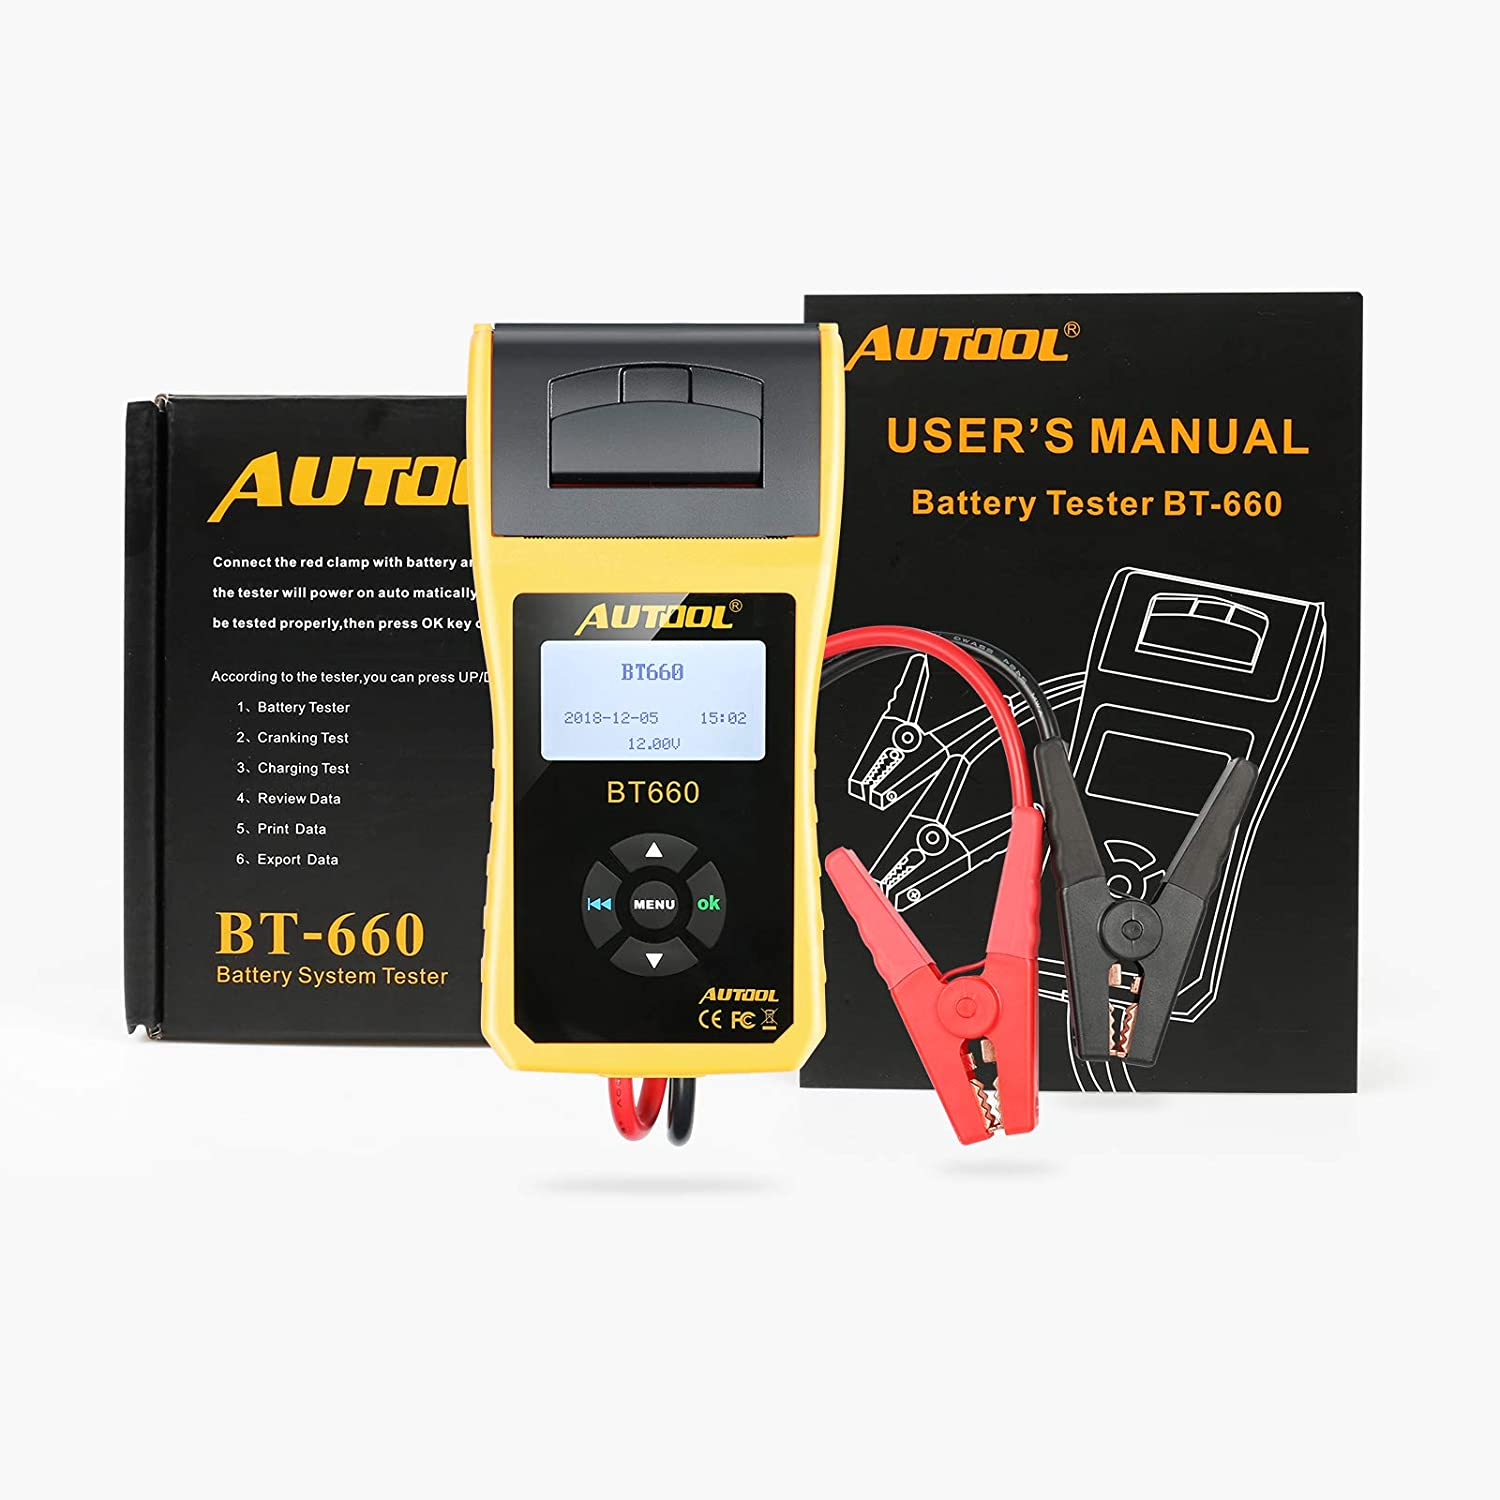 AUTOOL BT-360 Car Battery Tester, 12V Automative Battery Load Tester CCA 100-2400 Bad Cell Test for Regular Flooded,Auto Cranking and Charging System Diagnostic Analyzer for Vehicle/Boat/Motorcycle MRCARTOOL